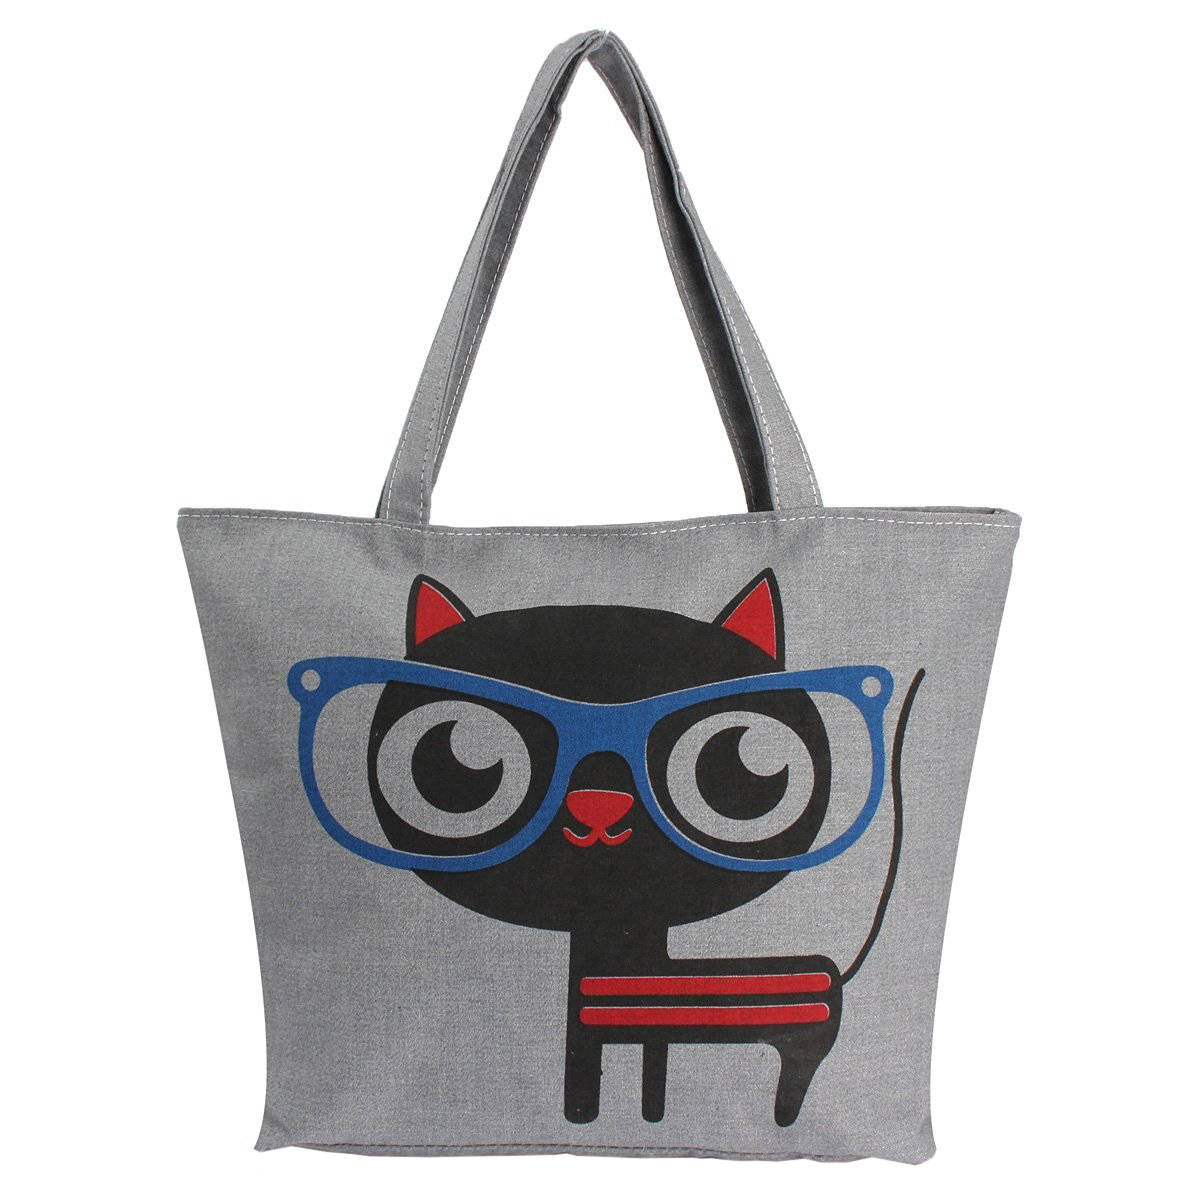 TEXU Women Canvas Lady Shoulder Bag Handbag Tote Shopping Bags Zip Multi Pattern Red-eared Cat